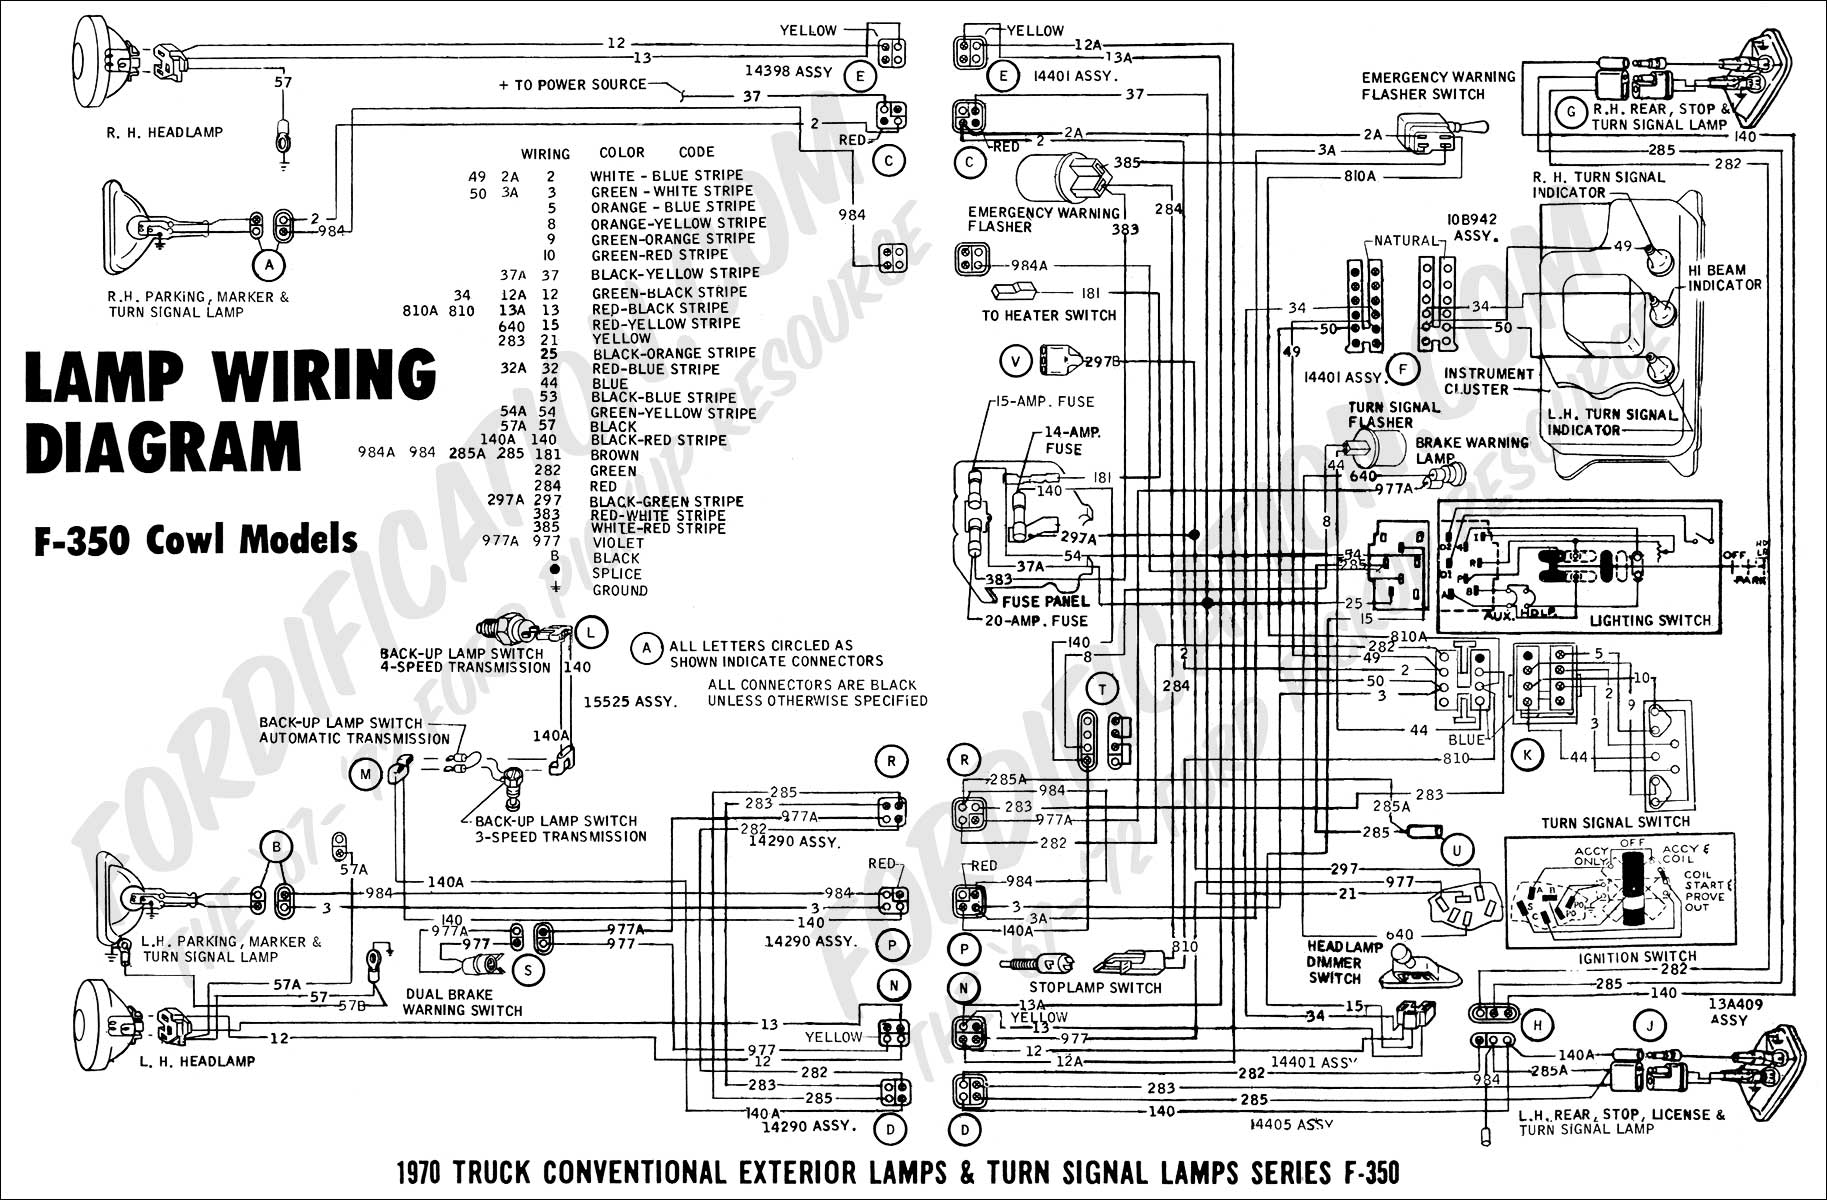 transmission for 2004 f350 wiring schematic 2003 f 250 wiring schematic wiring diagrams blog  2003 f 250 wiring schematic wiring